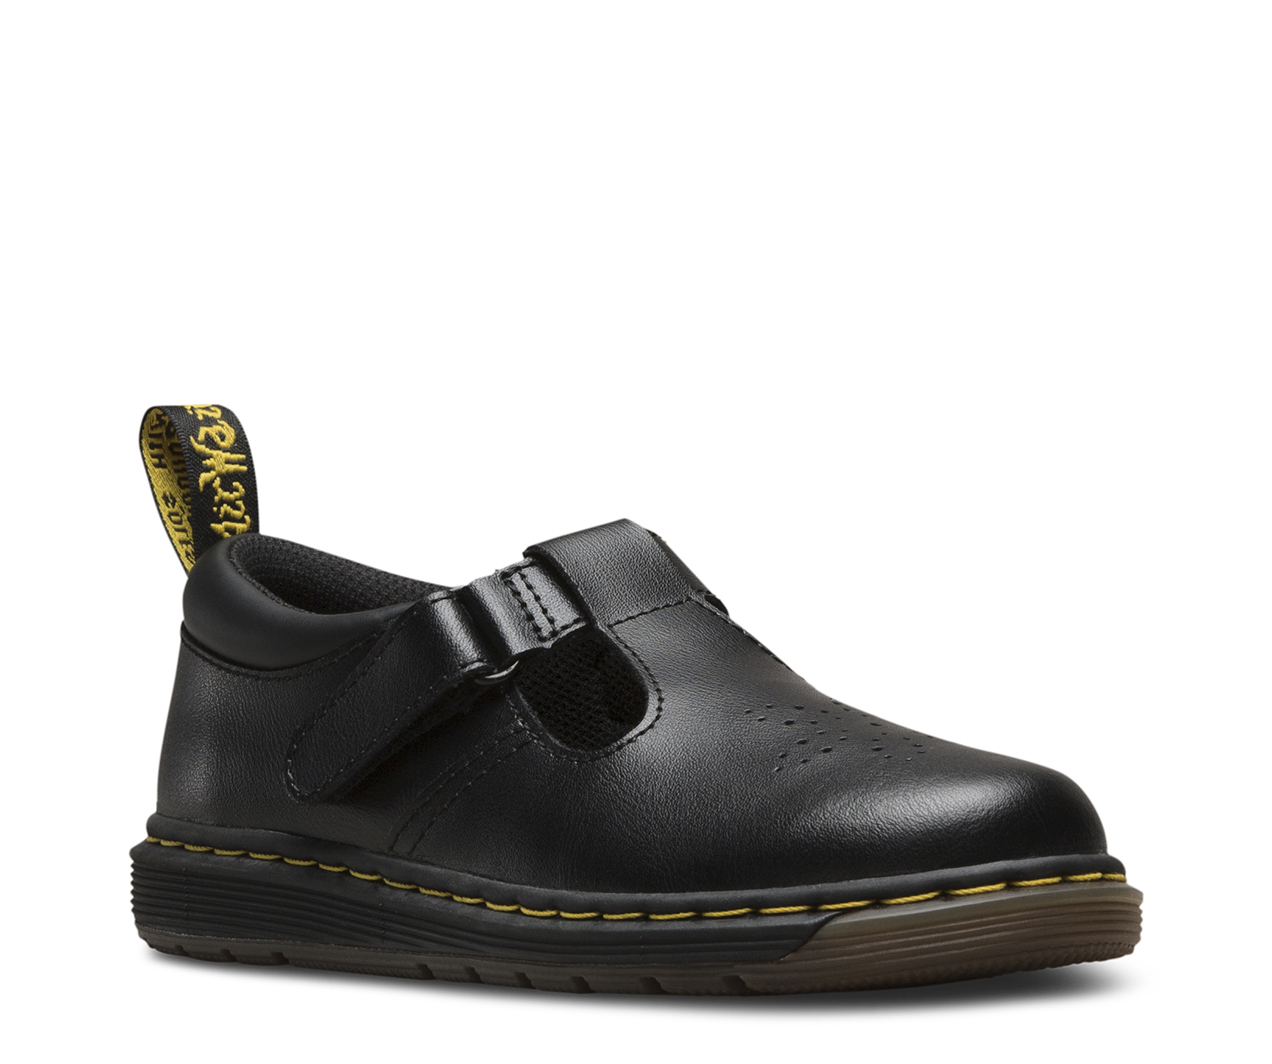 Dr. Martens Youth Polley T Lamper Leather Buckle Shoe Black-Black-4 (Older) Size 4 (Older) 8VioFN